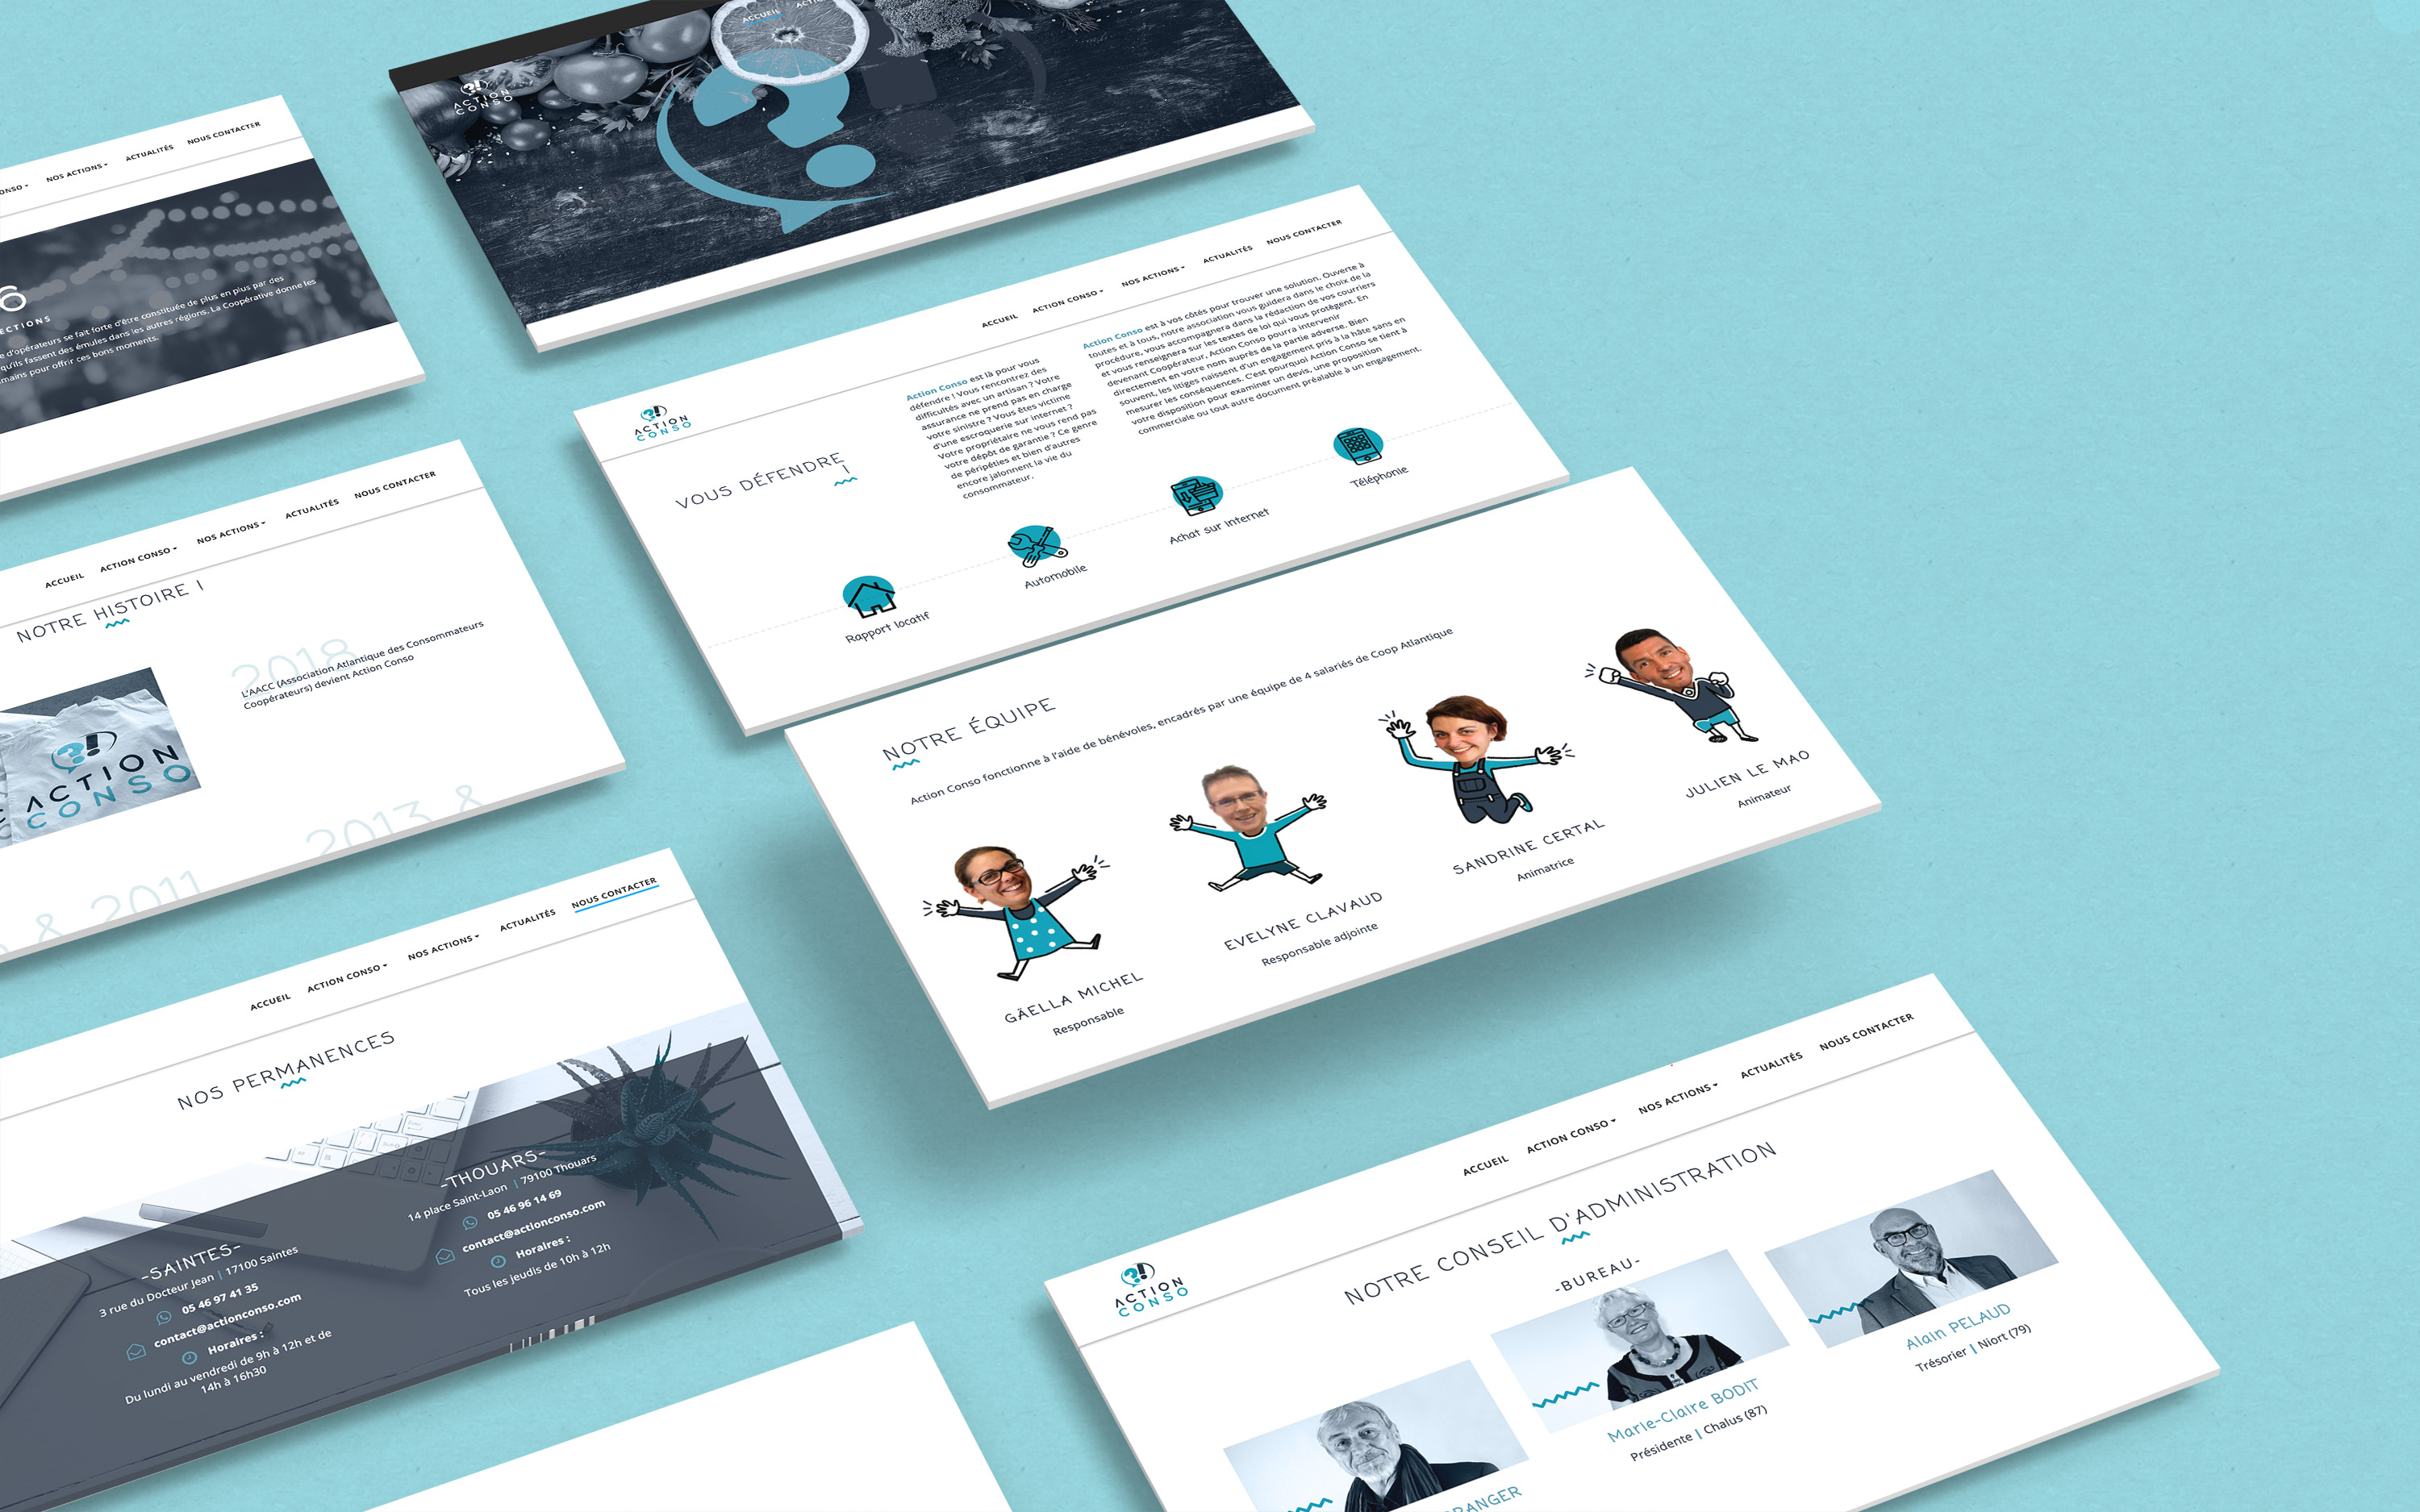 Projet-Action-Conso-UxDesign-Julia-Capdebos.jpg